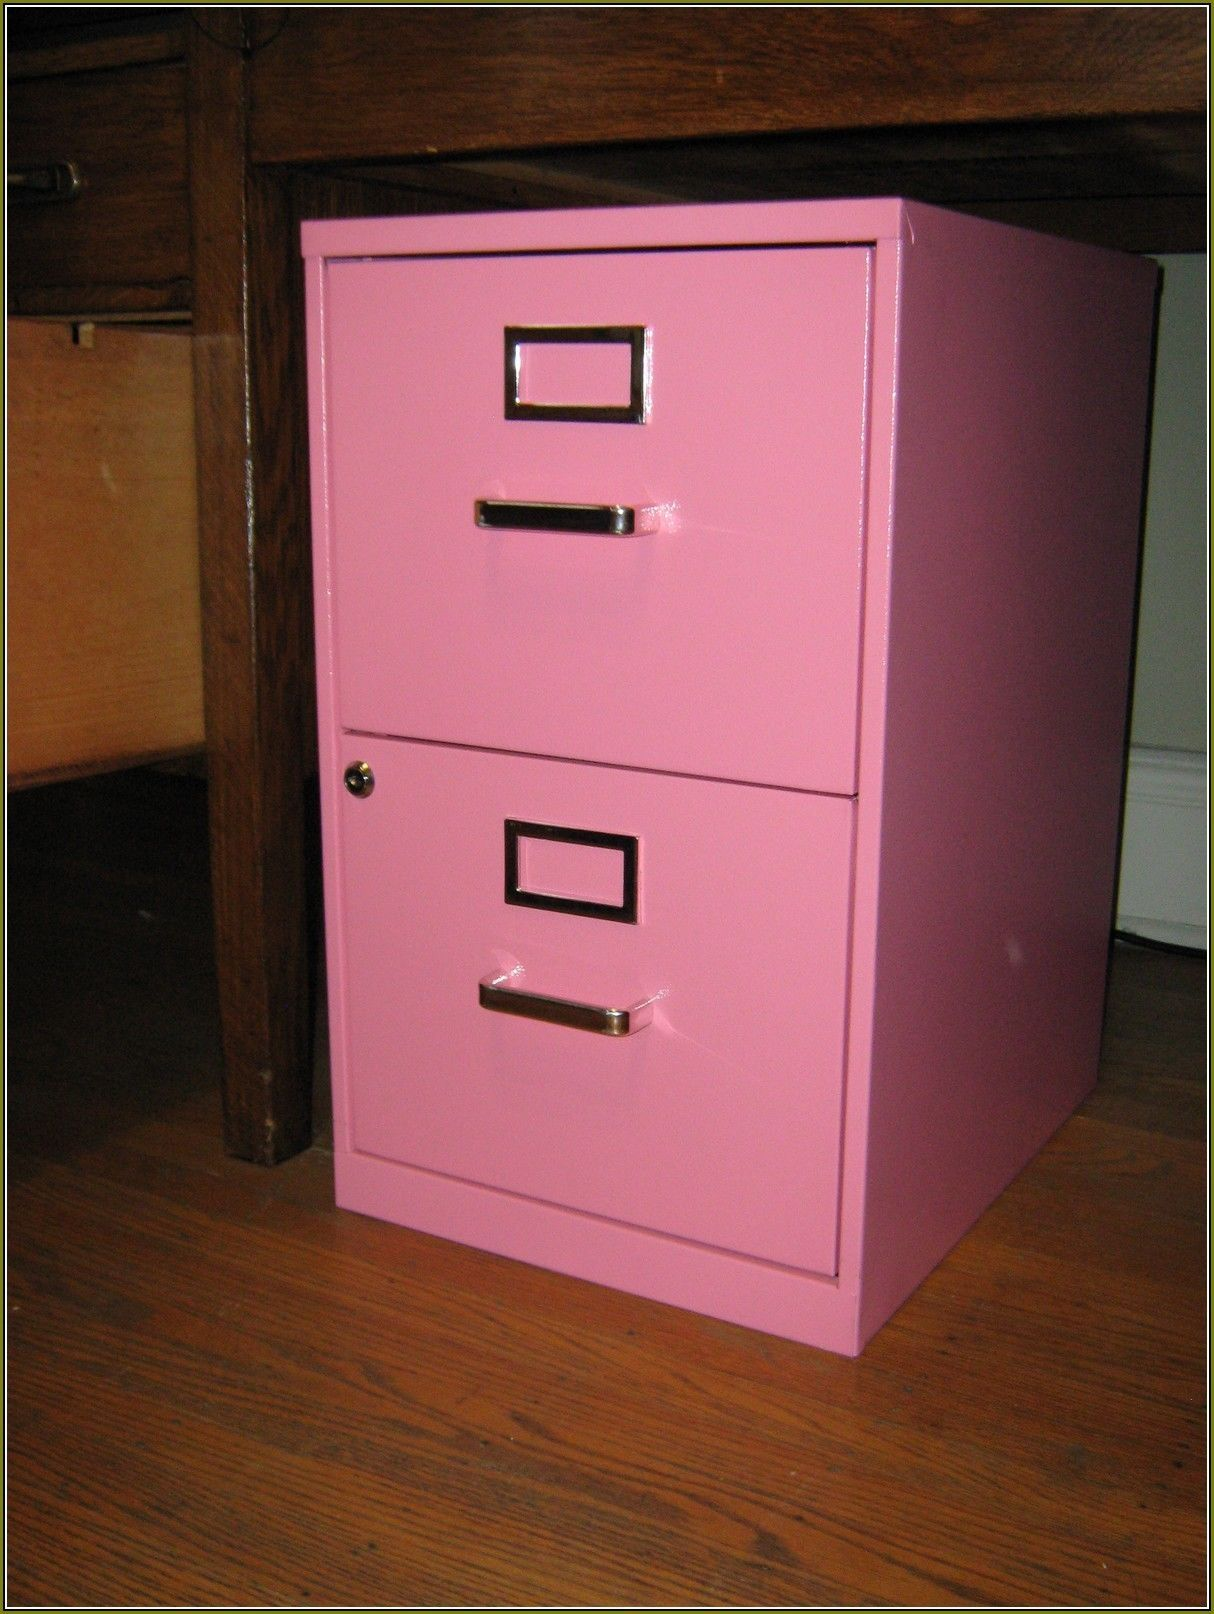 Pink Filing Cabinet Staples Cabinets Are An Essential Element Of The Contemporary Office